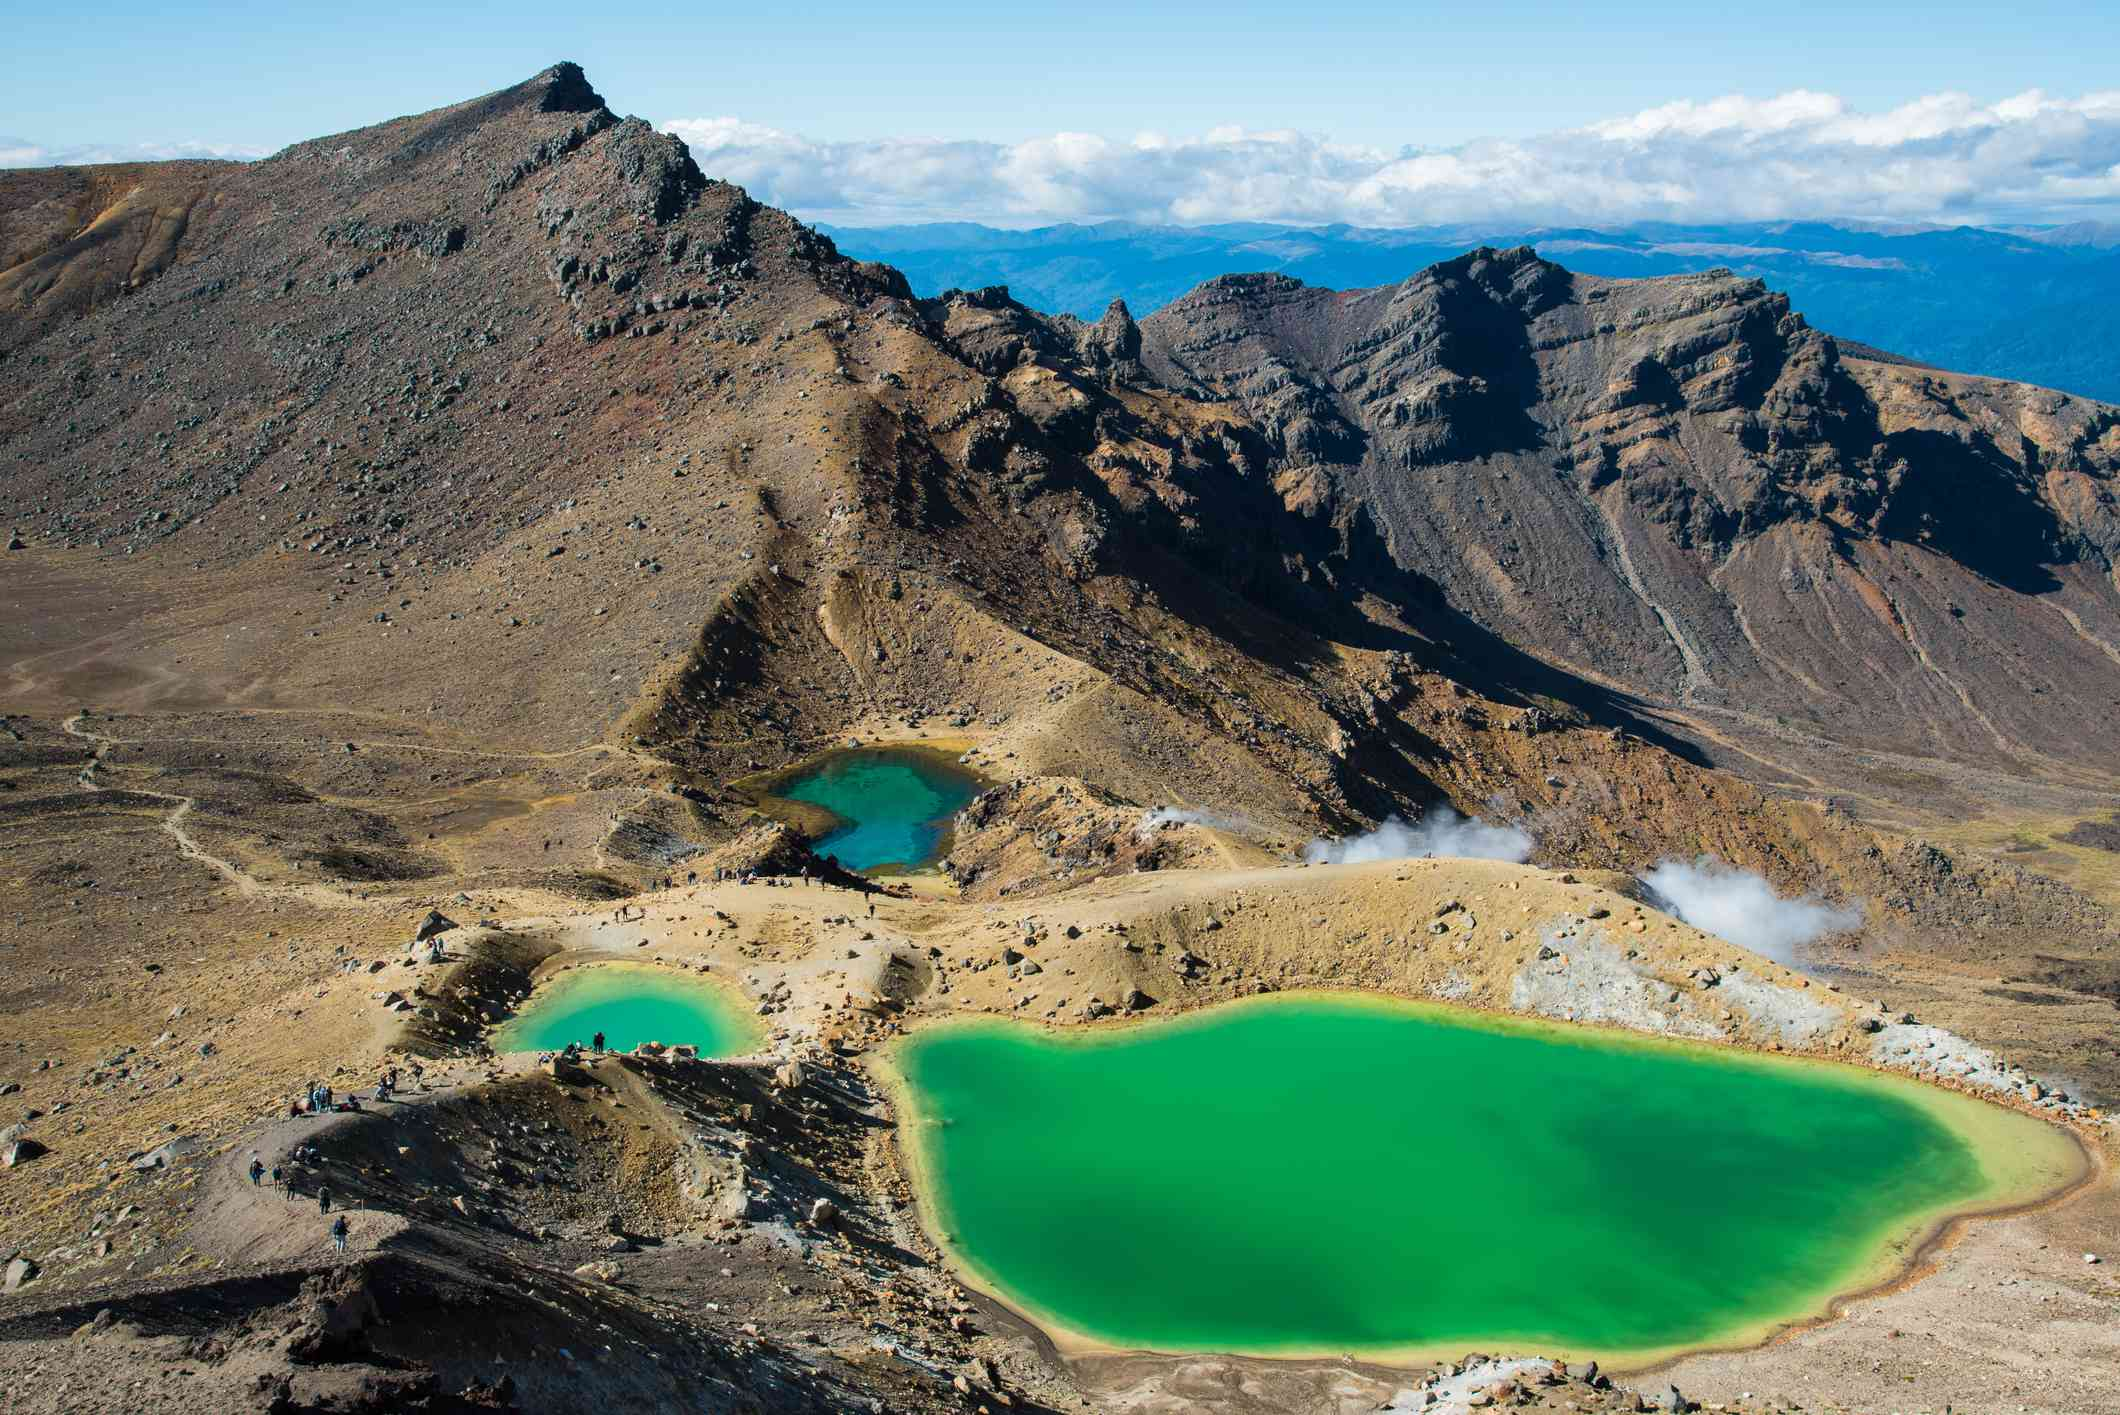 one large and two smaller emerald green lakes surrounded by mountains with a bright blue sea of water, blue sky, and low, white clouds in the distance at Tongariro Alpine Crossing